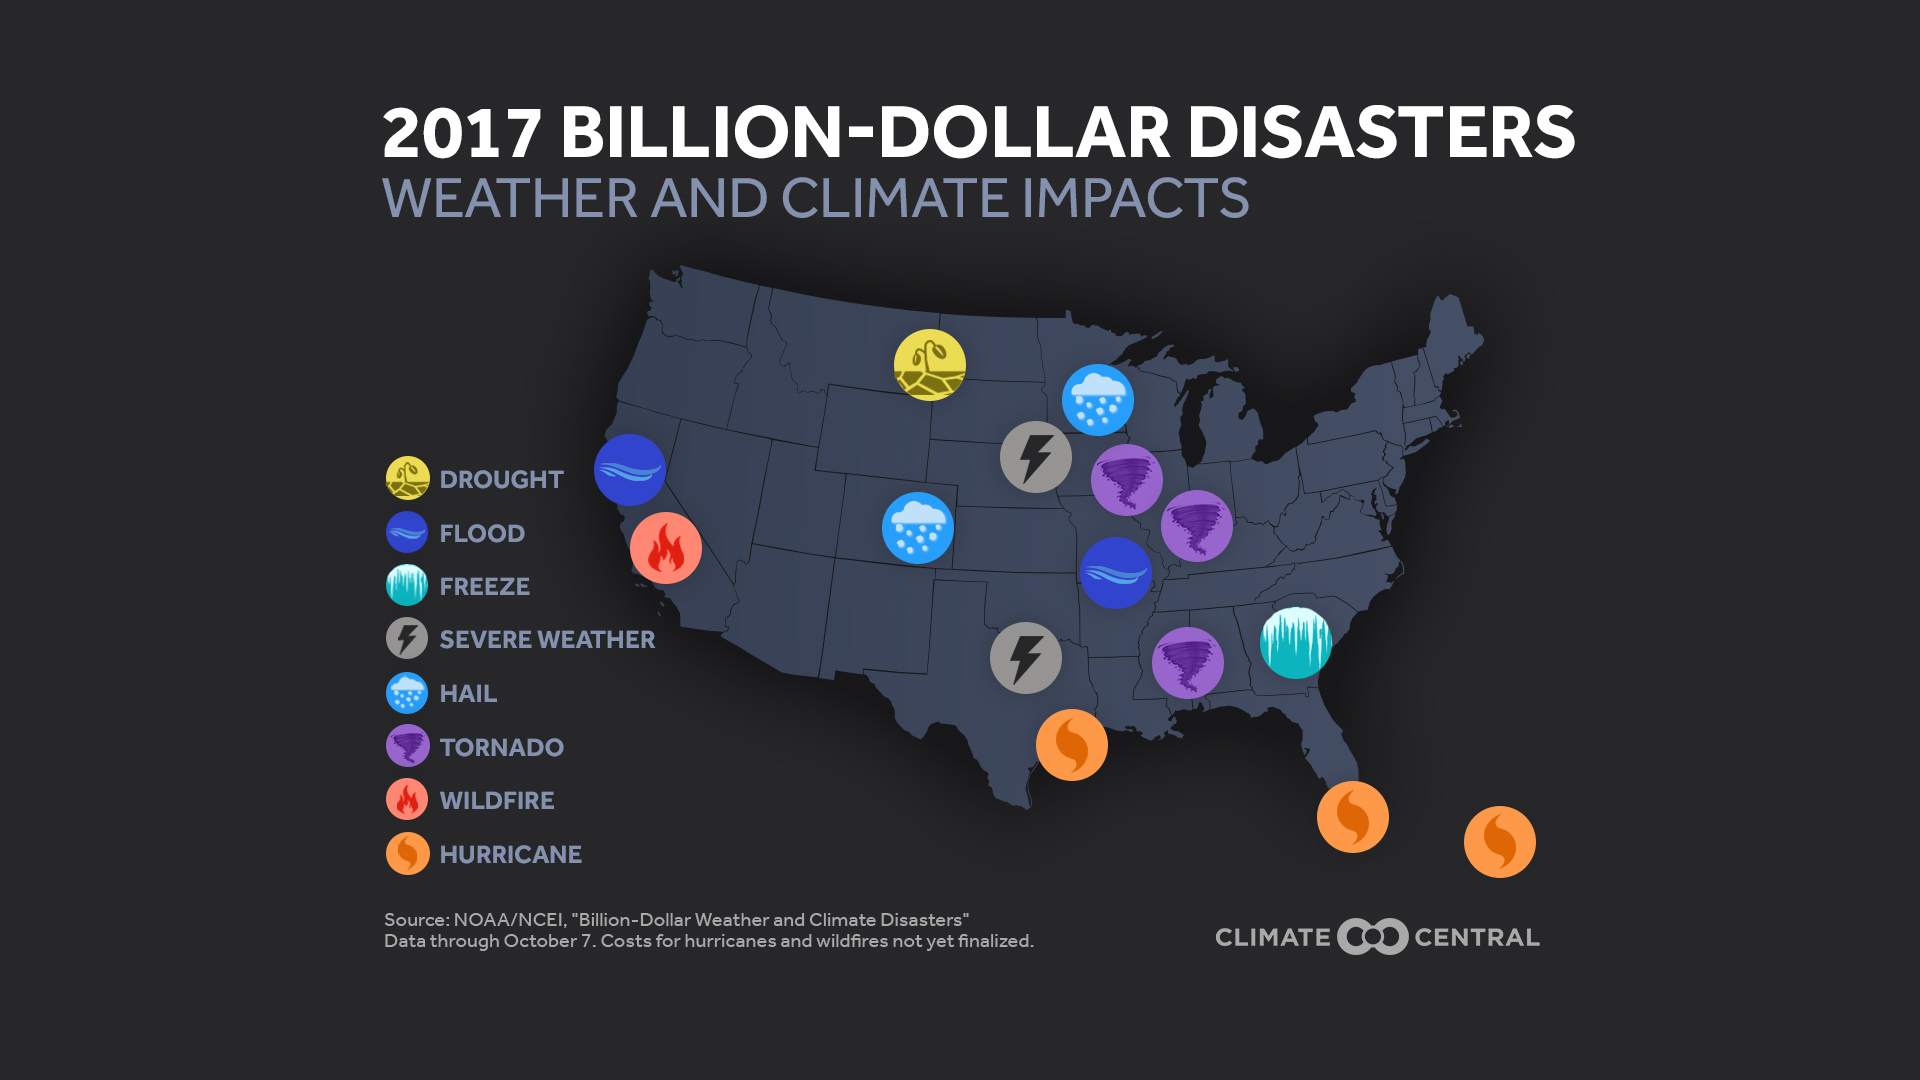 2017 was the year of the billion dollar disaster climate central